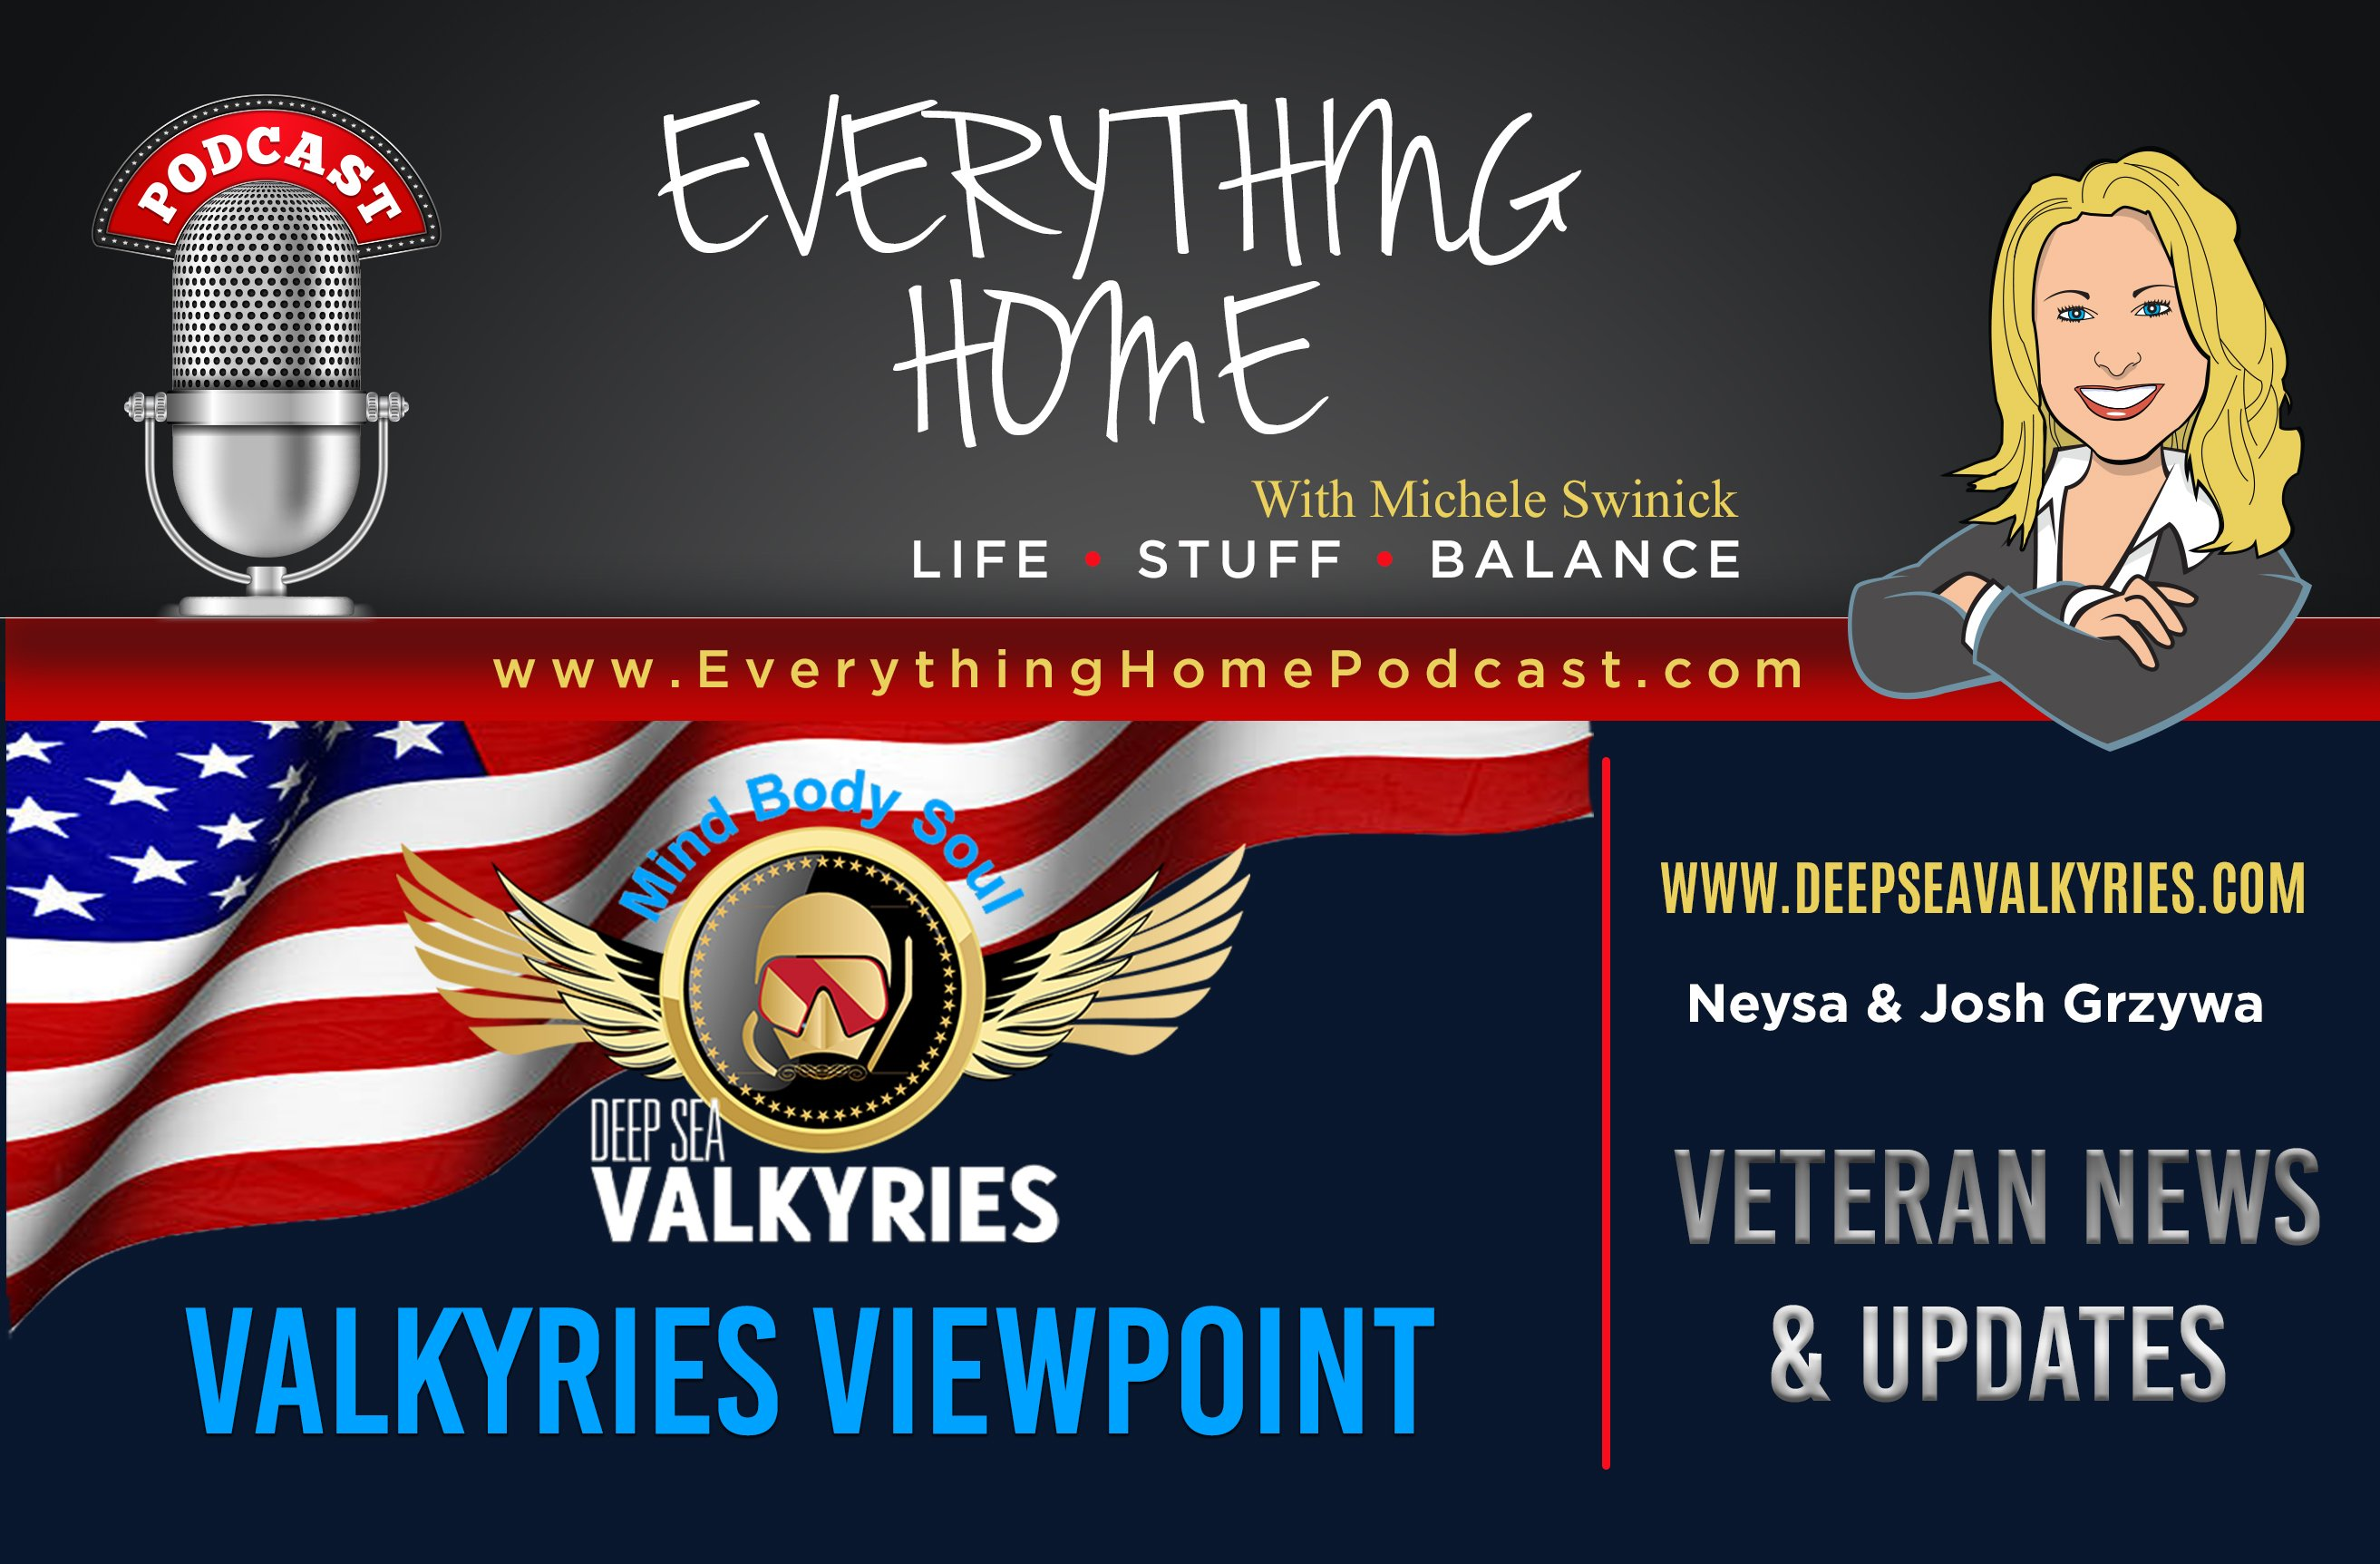 EVERYTHING HOME PODCAST - VALKRYIES VIEWPOINT